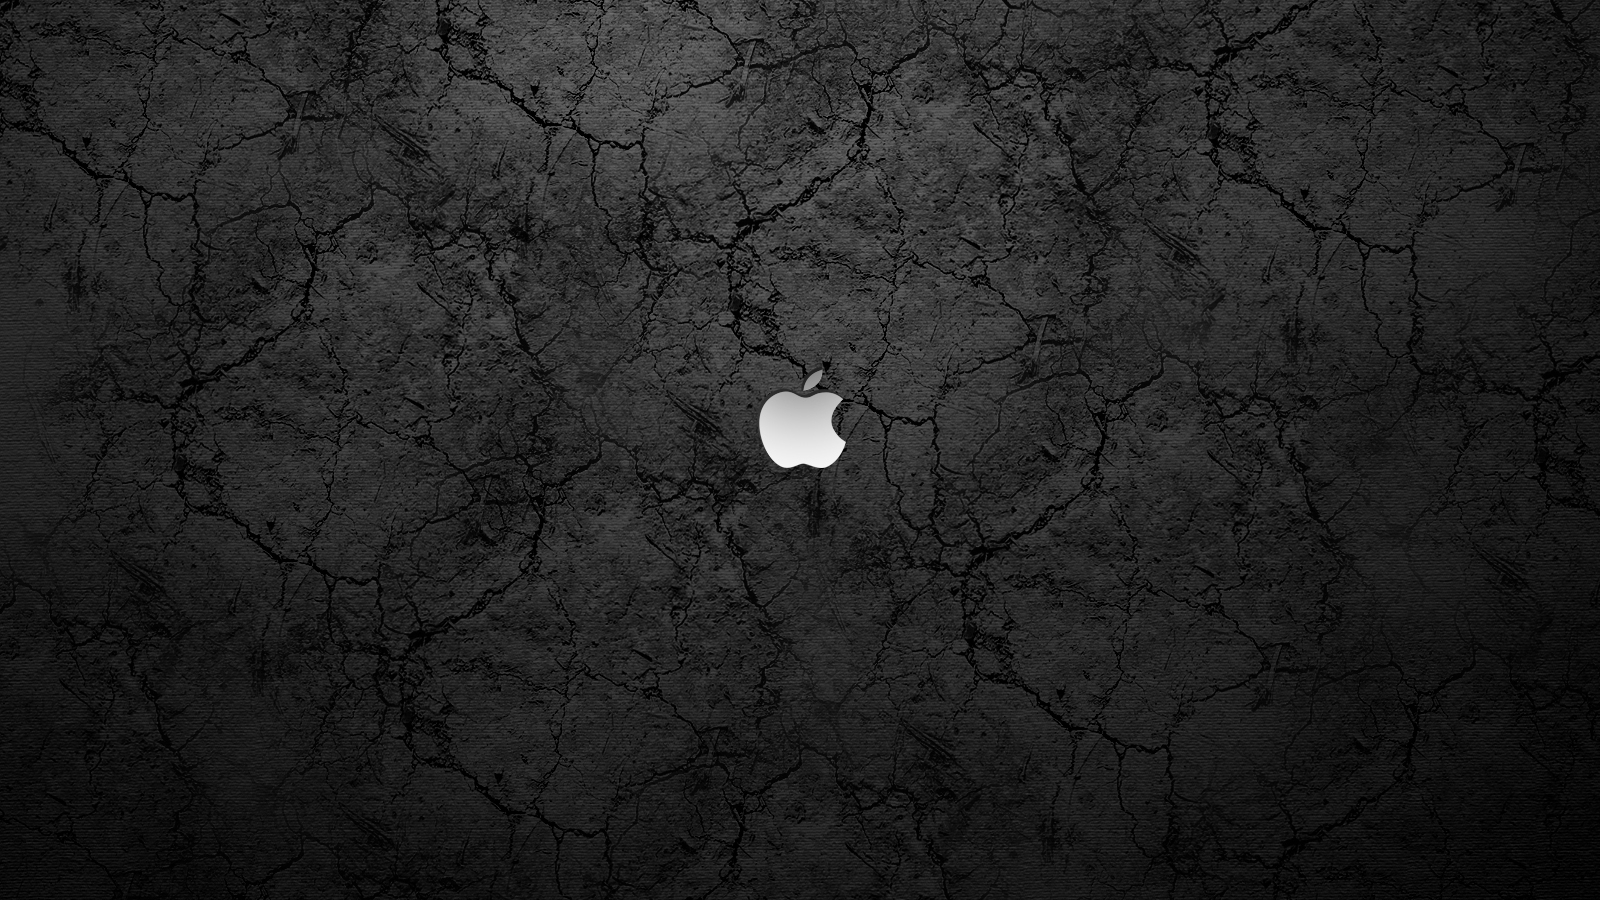 Free Download Inc Logo Slate Marble Hd Wallpaper Computer Systems 307402 1600x1200 For Your Desktop Mobile Tablet Explore 48 Marble Laptop Wallpaper White Marble Wallpaper Tumblr Marble Wallpaper Marble Wallpaper For Interior